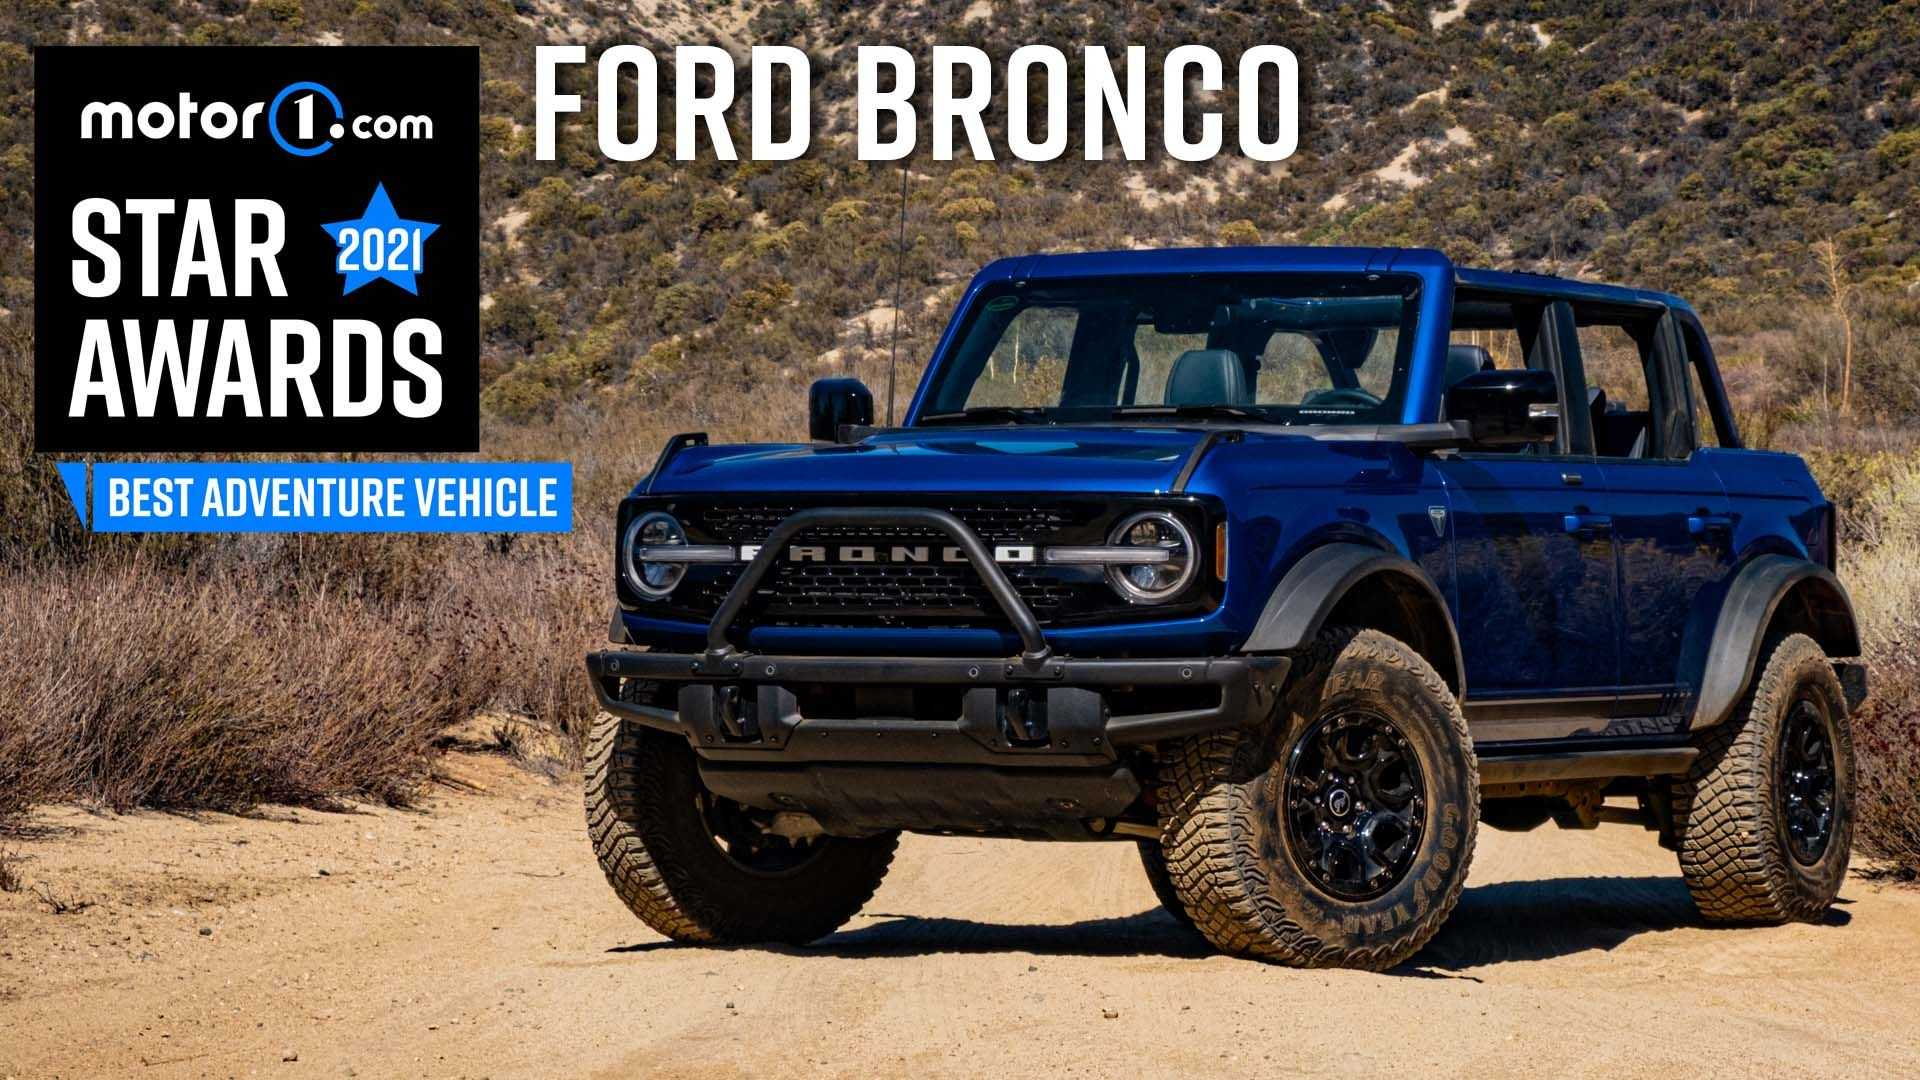 Ford Bronco Wins Motor1 Star Award For Best Adventure Vehicle